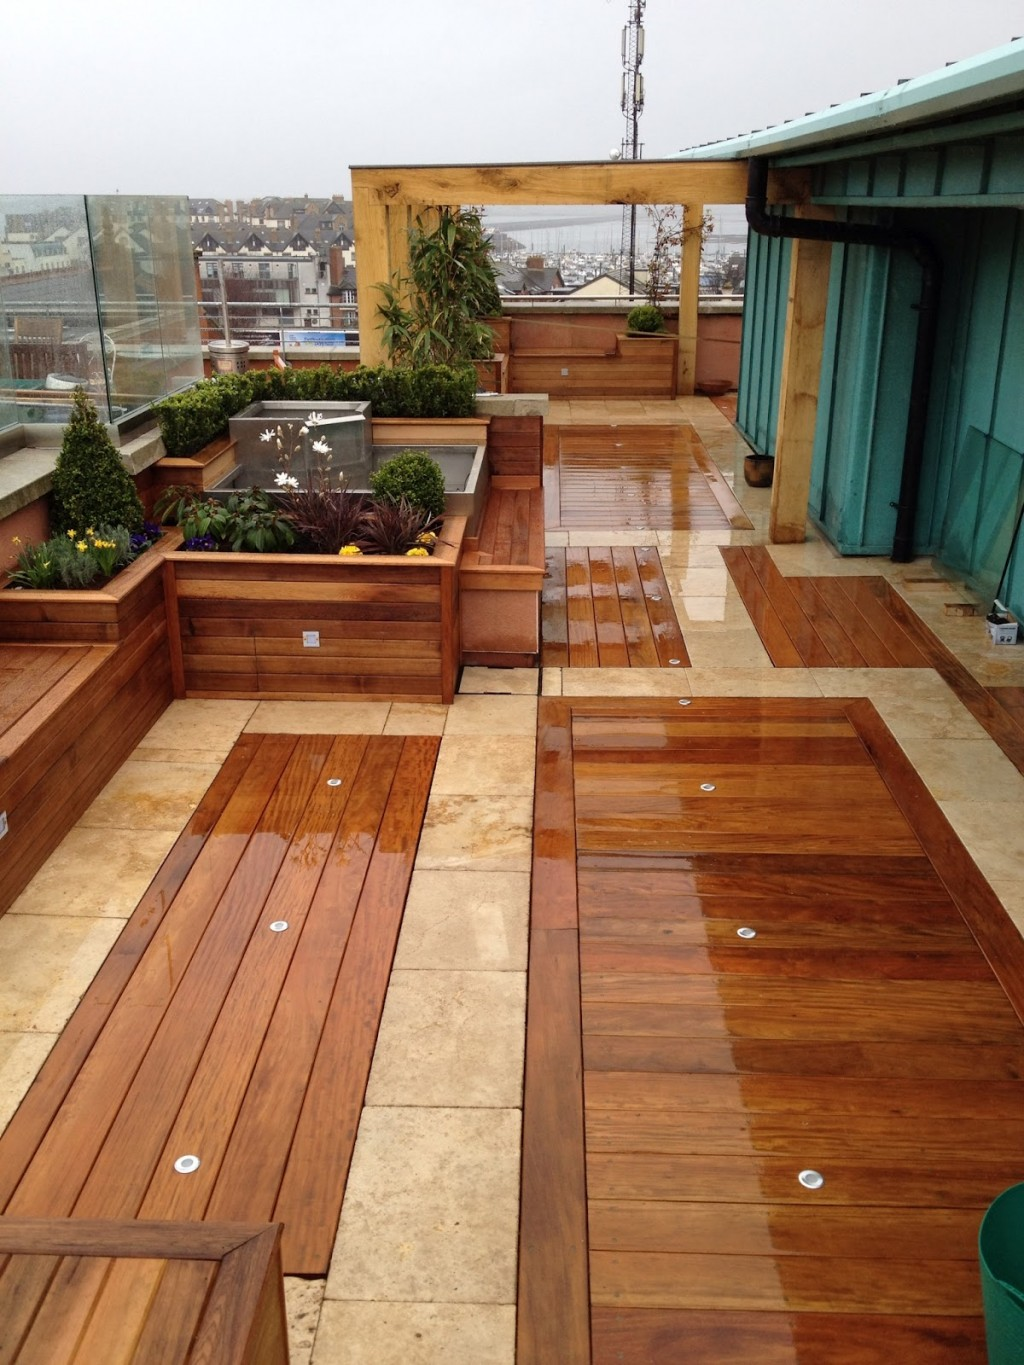 25 Beautiful Rooftop Garden Designs To Get Inspired. on Timber Patio Designs id=42709